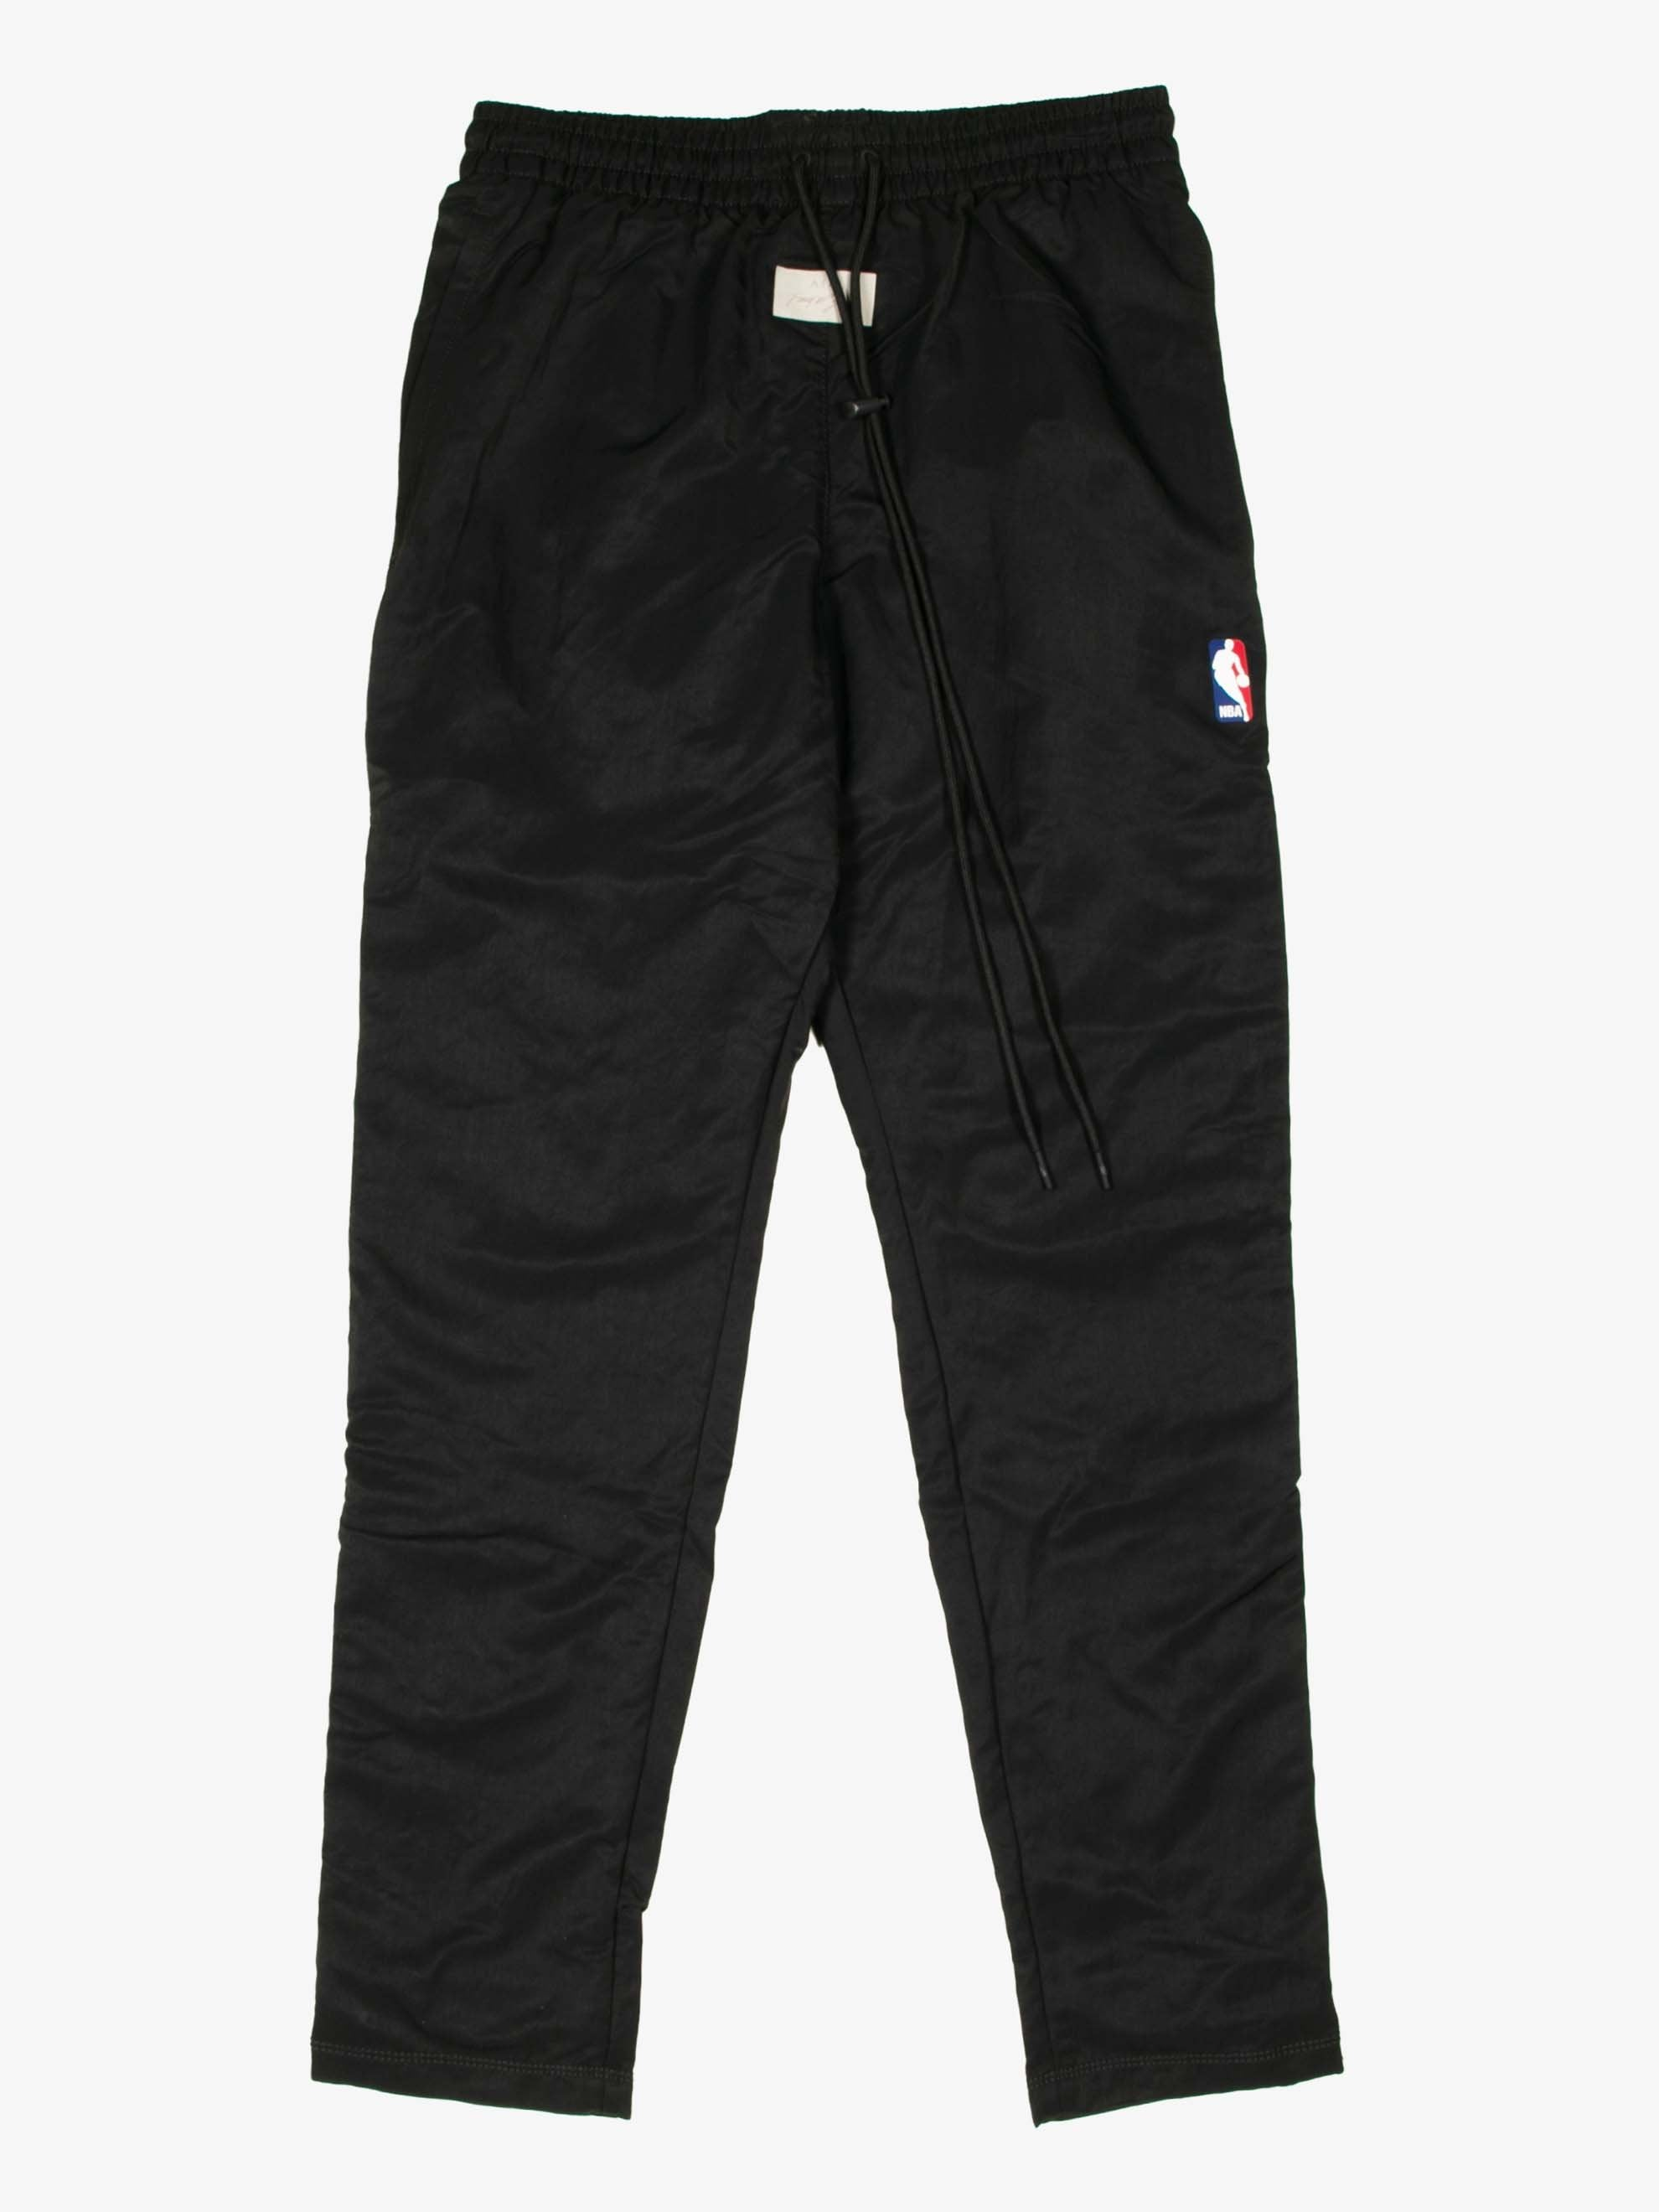 Off Noir Nike x Fear Of God Warm Up Pant 1